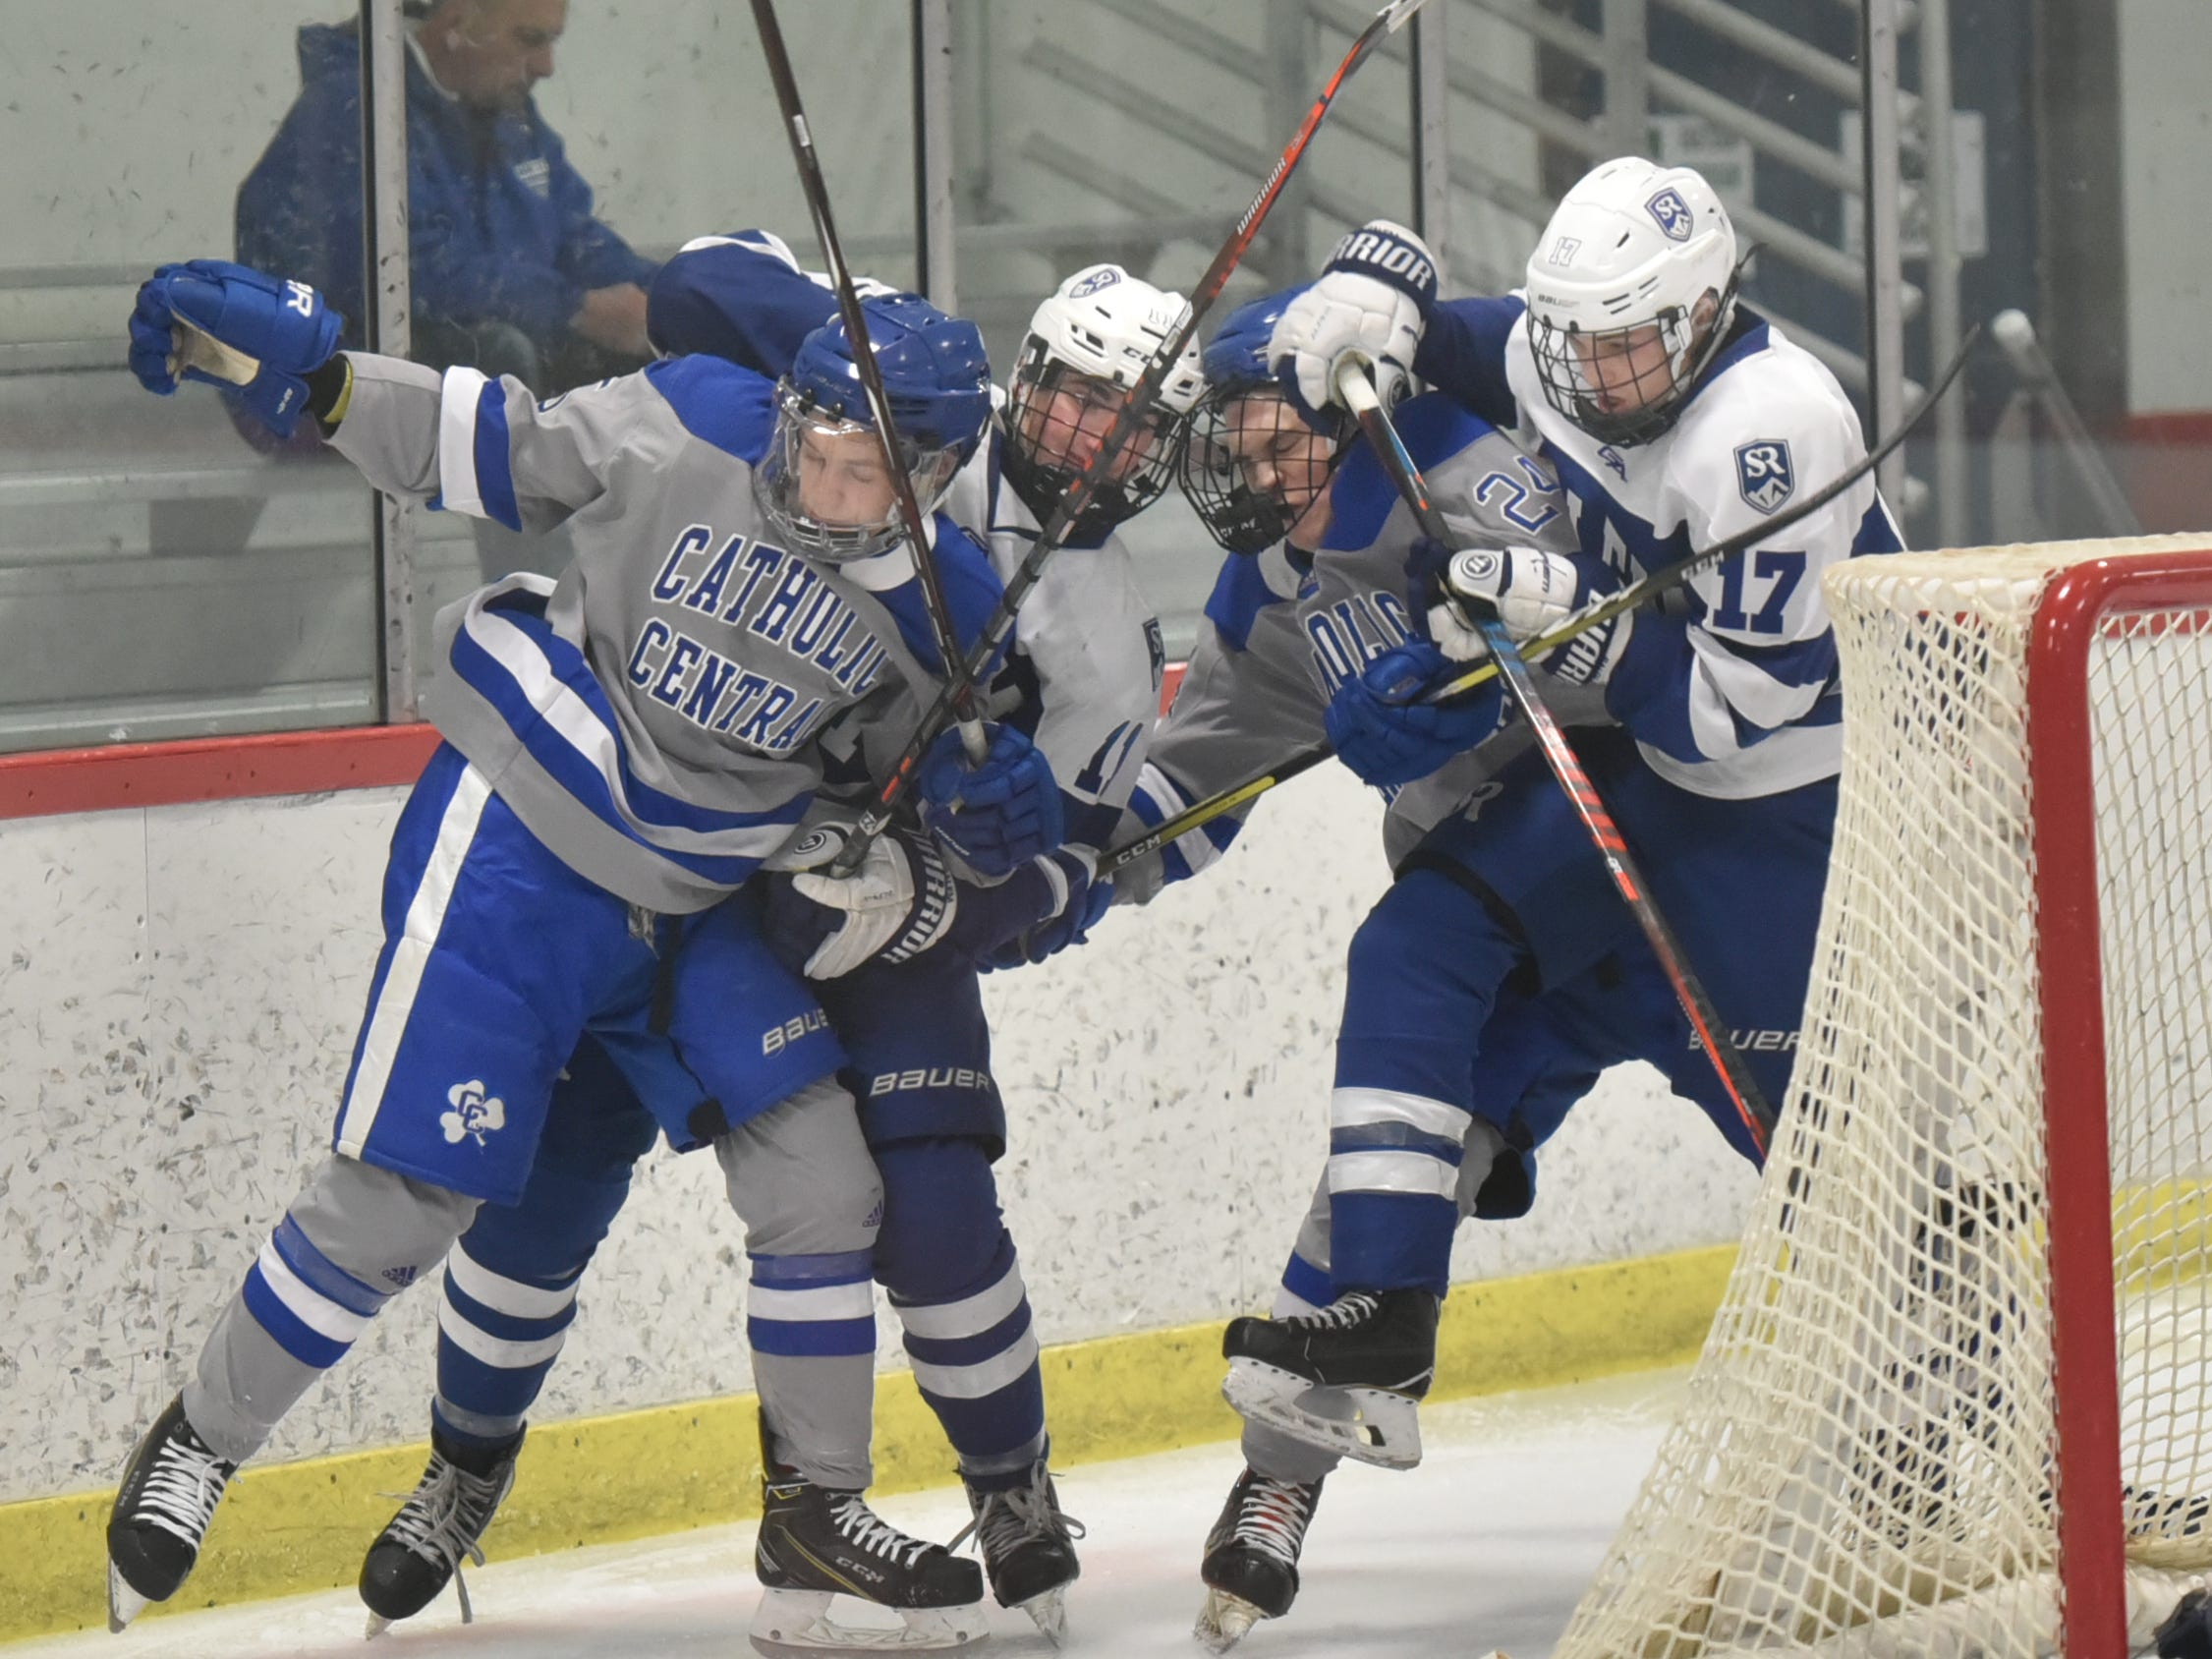 A pair of Salem High players greet their visitors from Detroit Catholic Central behind the Rock net - with some checking and grabbing.